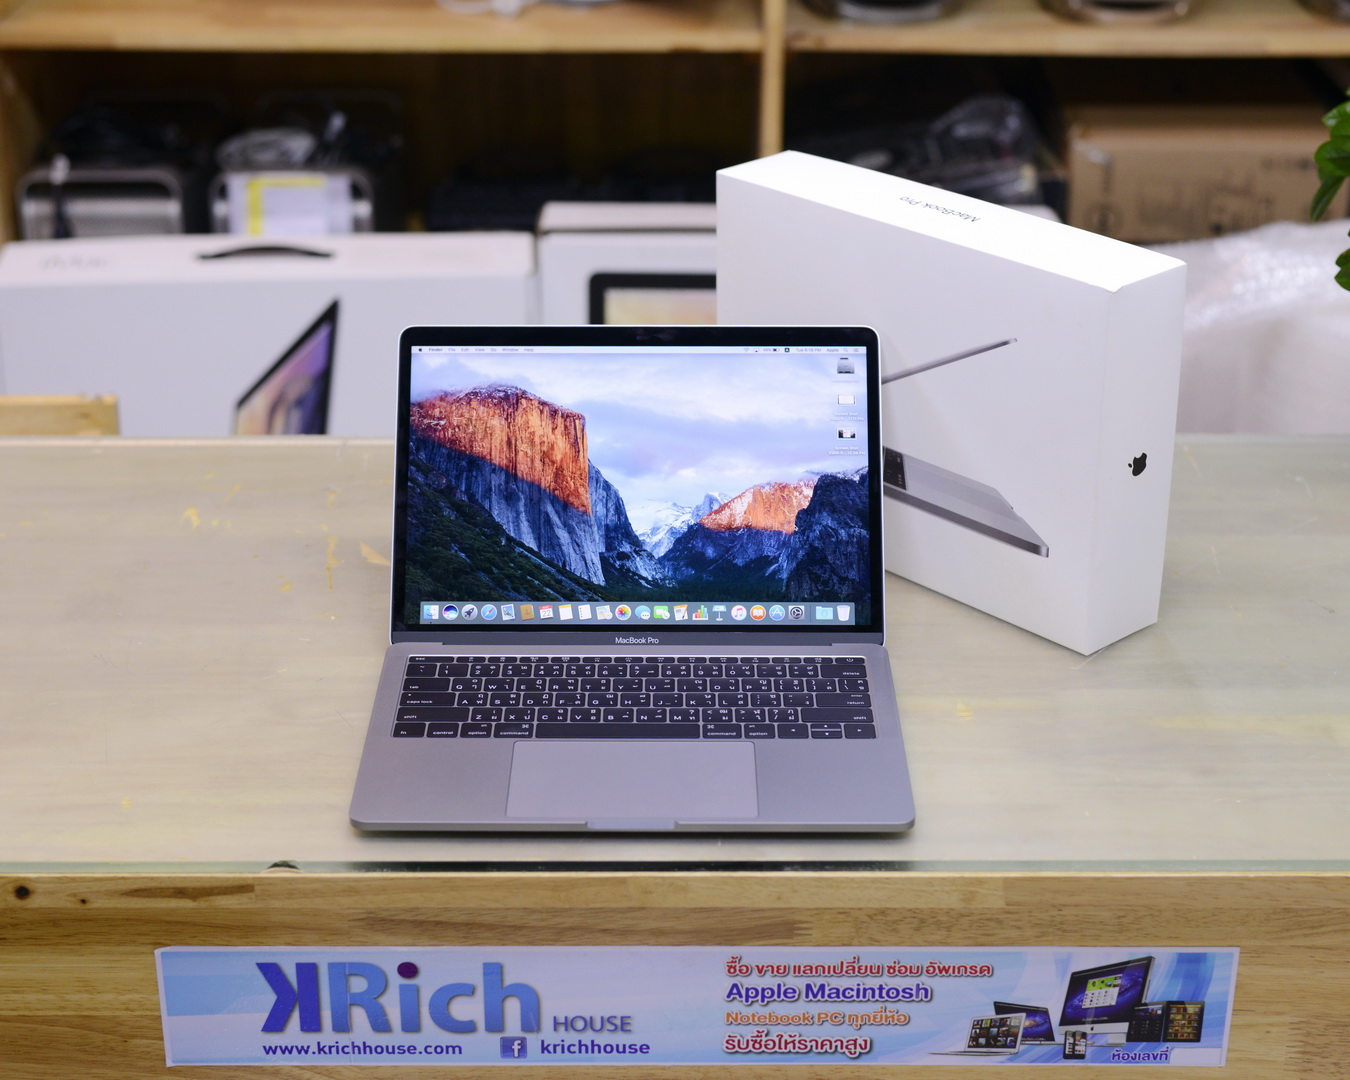 MacBook Pro (Retina 13-inch 2016) No-Touch Bar, Space Gray